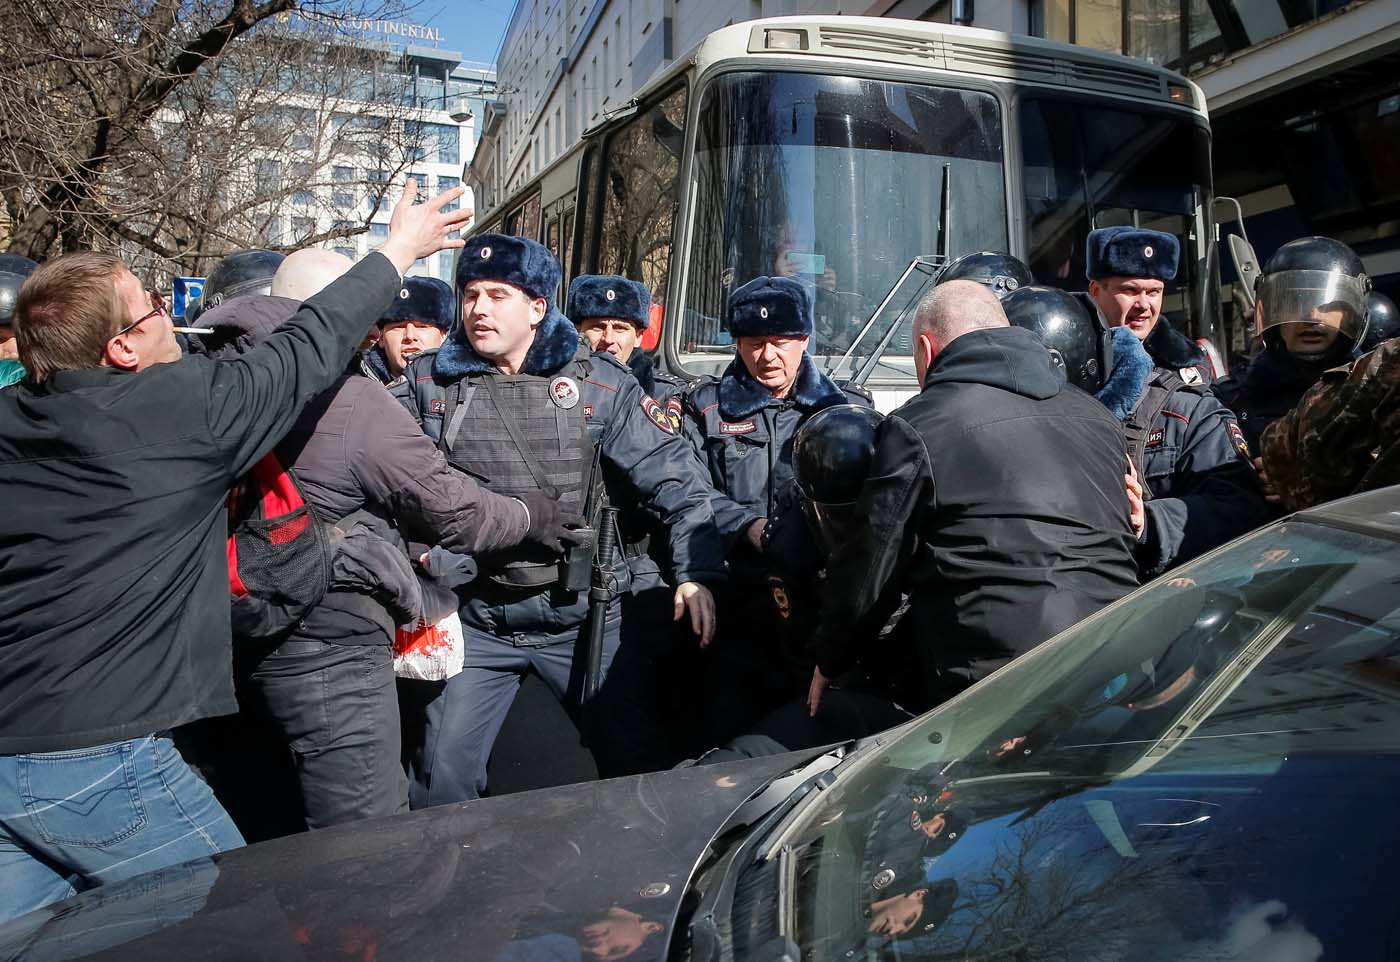 Law enforcement officers scuffles with opposition supporters blocking a van transporting detained anti-corruption campaigner and opposition figure Alexei Navalny during a rally in Moscow, Russia, March 26, 2017. REUTERS/Maxim Shemetov